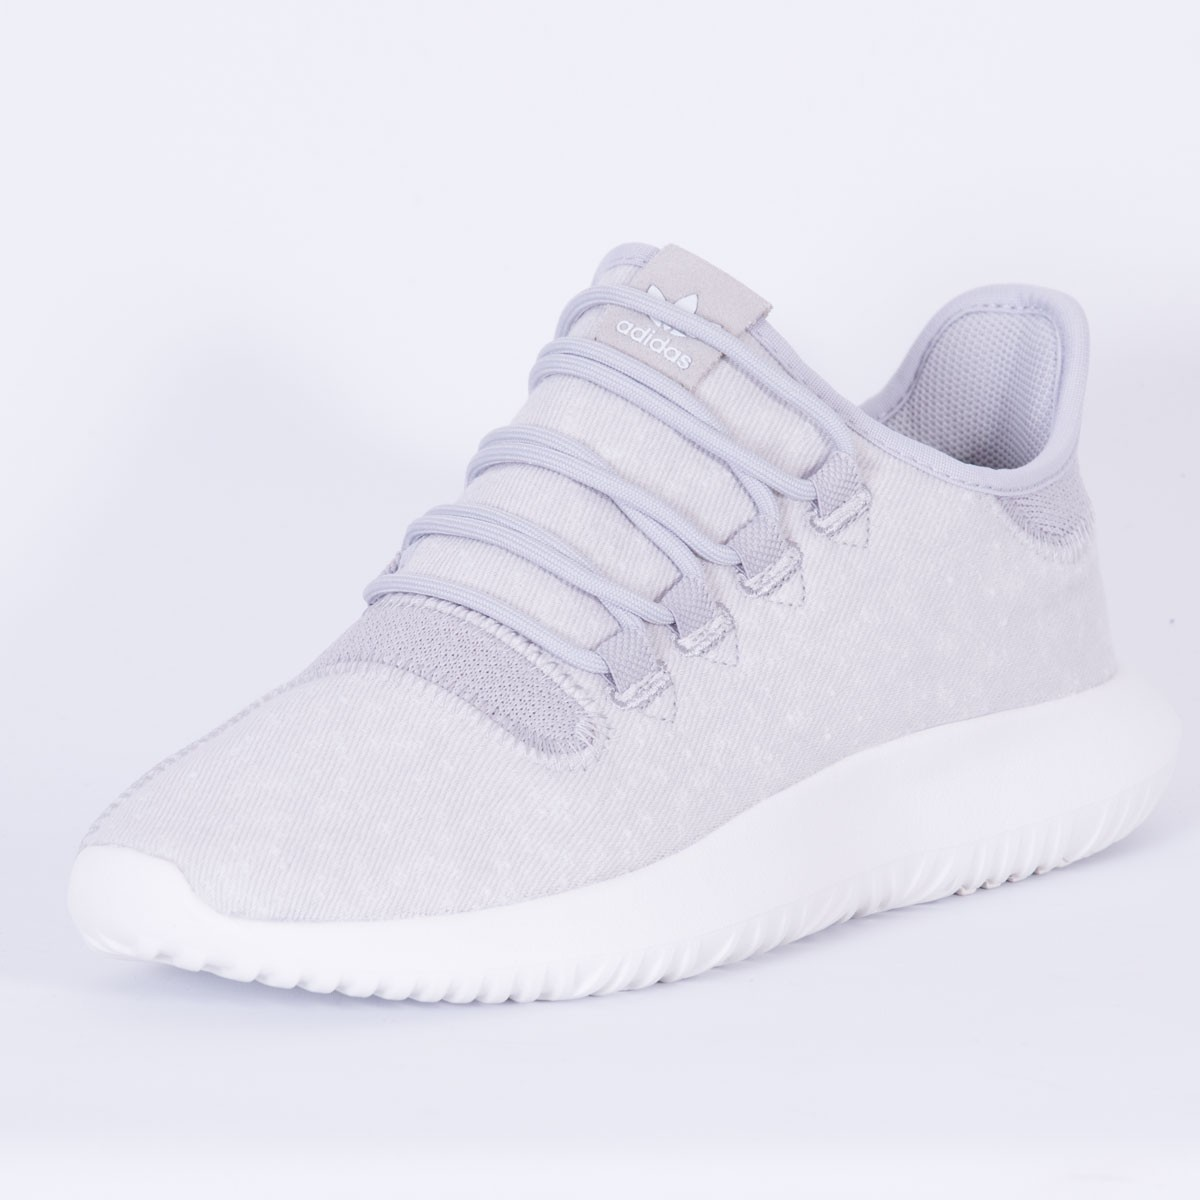 Adidas Tubular Shadow Grau TwoCrystal Weiß BY3570